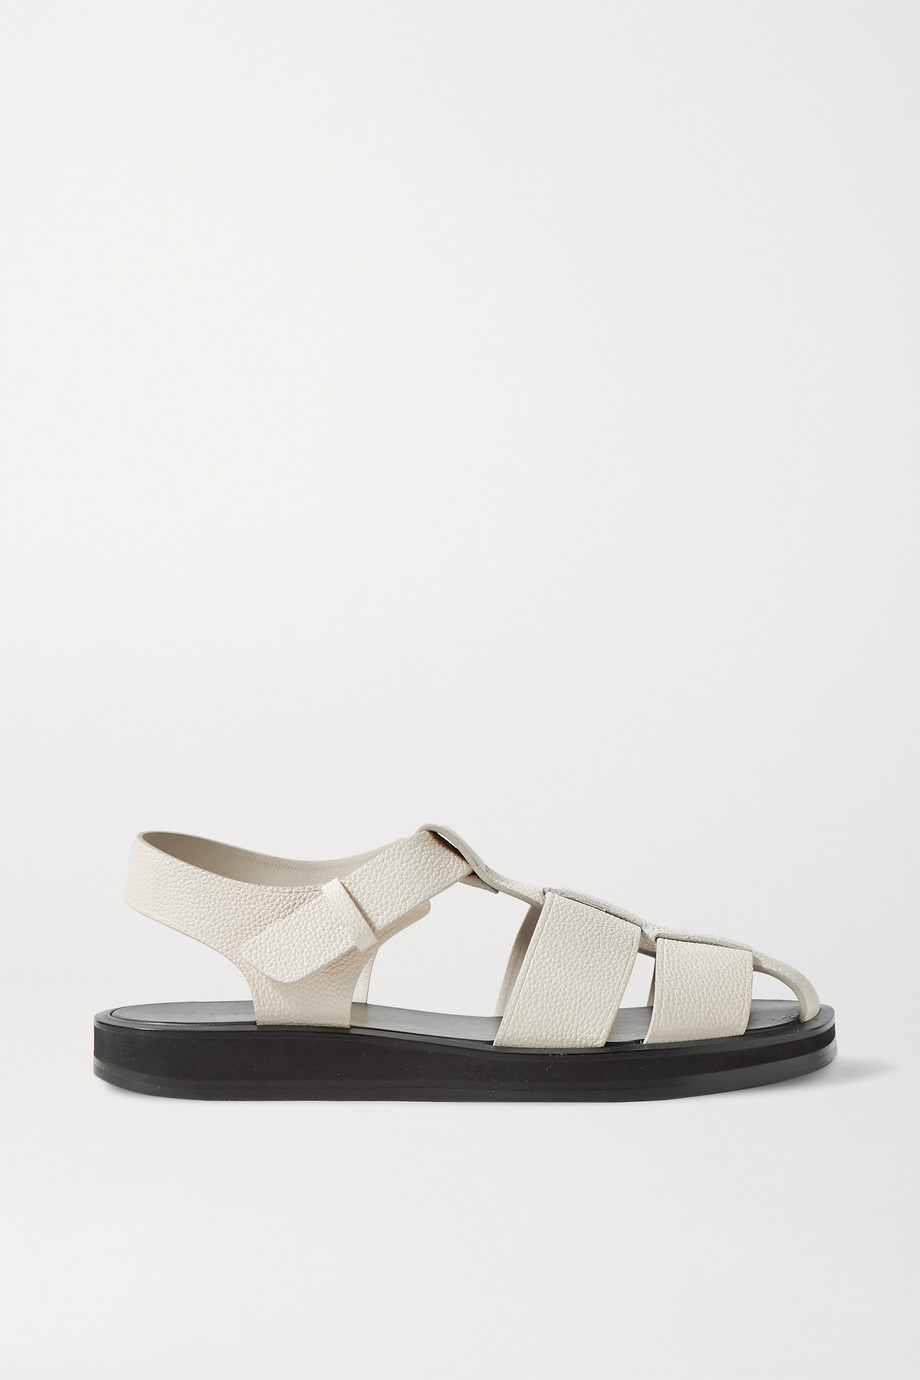 The Row Gaia 1 woven textured-leather sandals